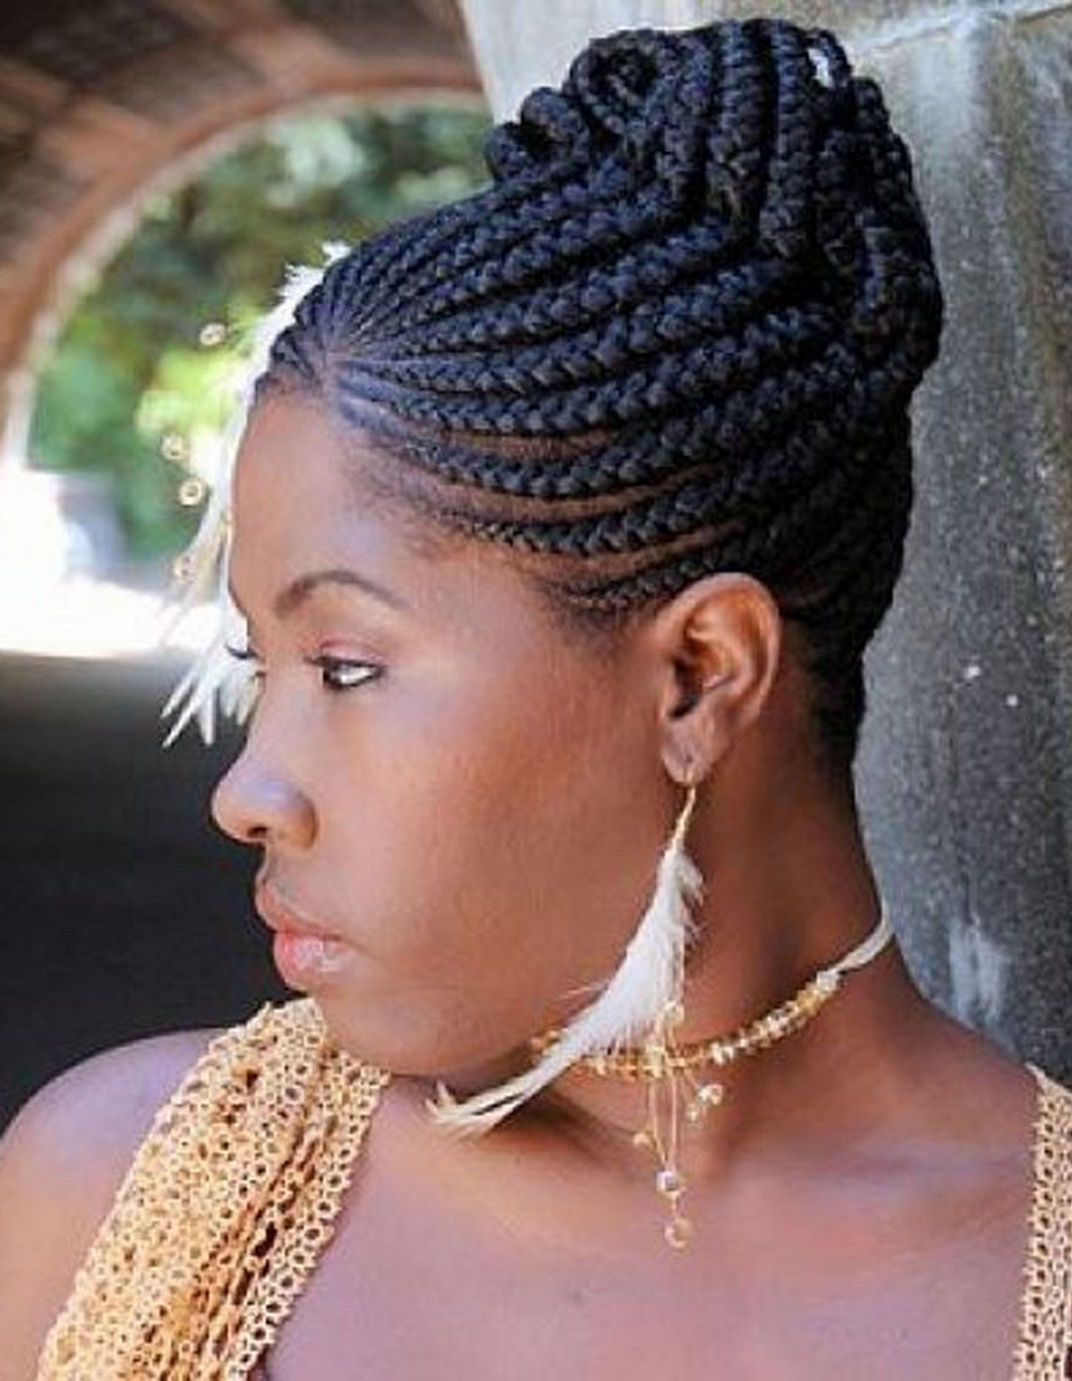 Braids Updo Hairstyles Photos Of Black Braided Hairstyles Urban Hair Co In Black Braids Updo Hairstyles (View 10 of 15)